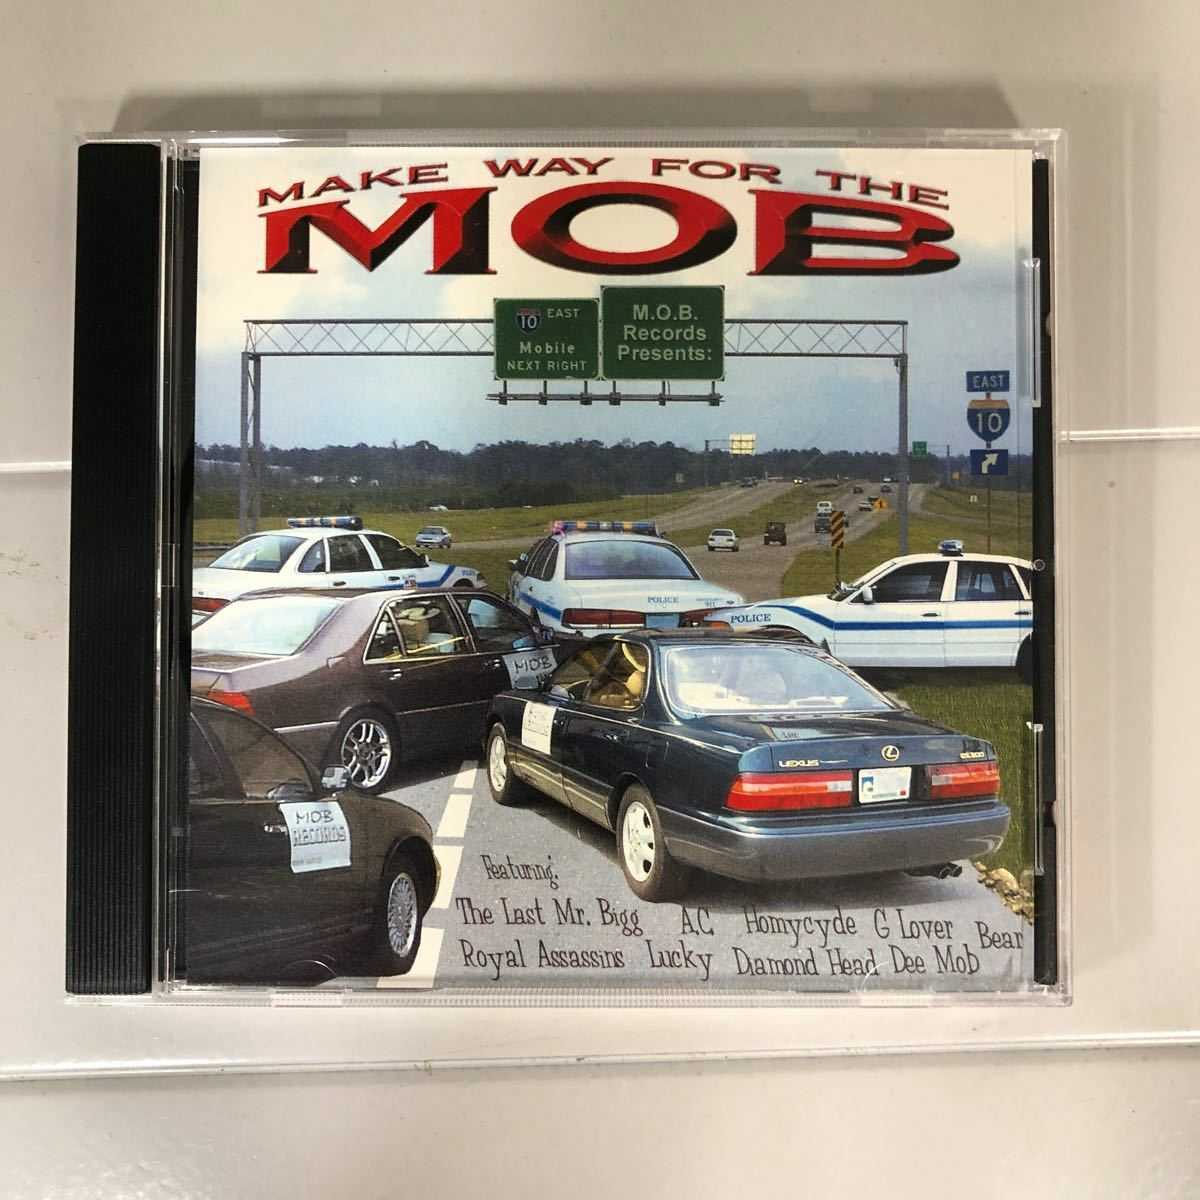 【G Rap/ 送料無料】MAKE WAY FOR MOB / V.A オムニバス